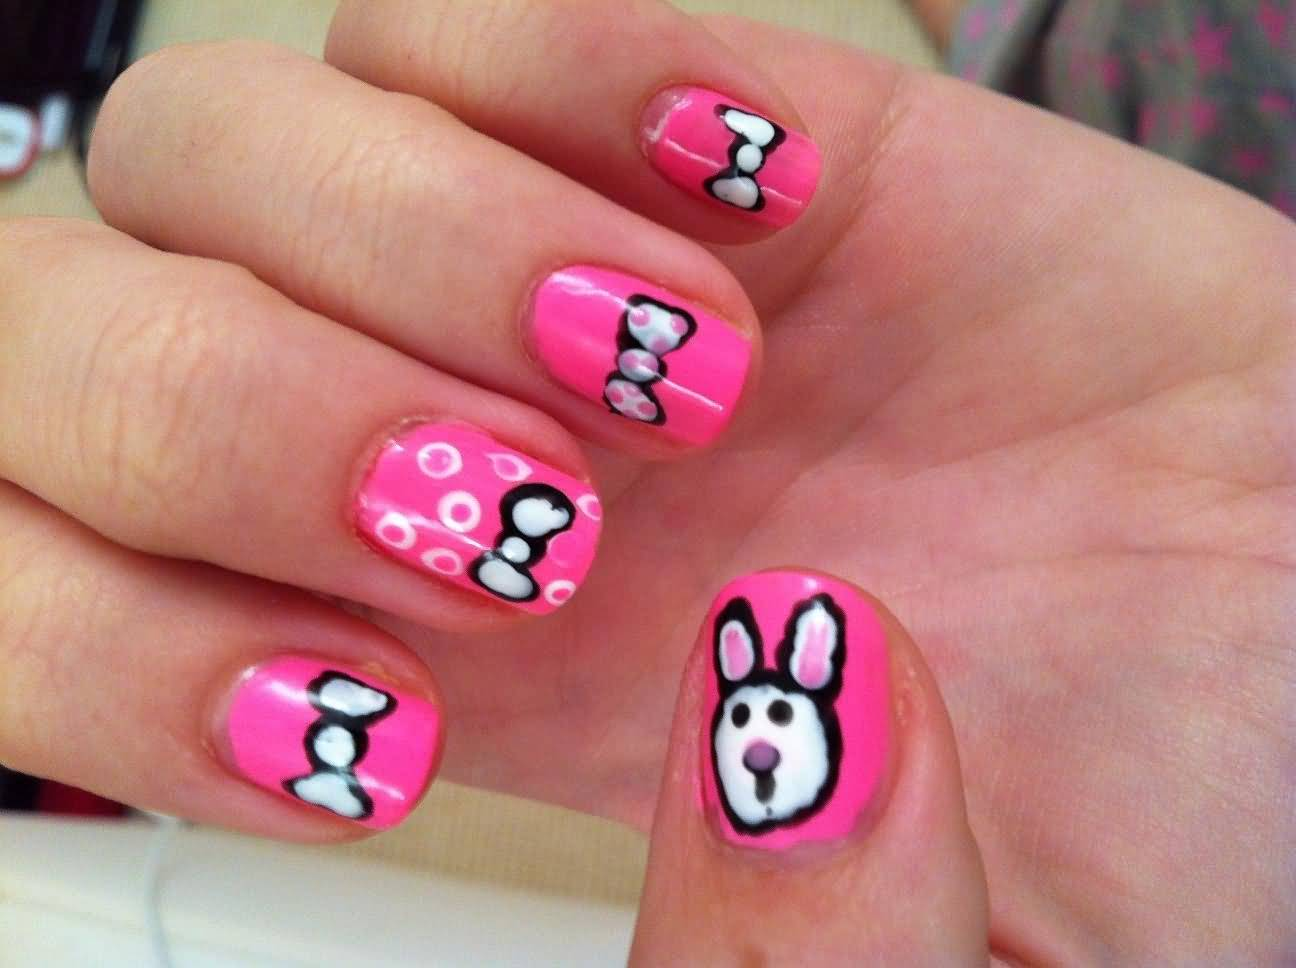 40+ Stylish And Simple Bow Nail Art Design Ideas